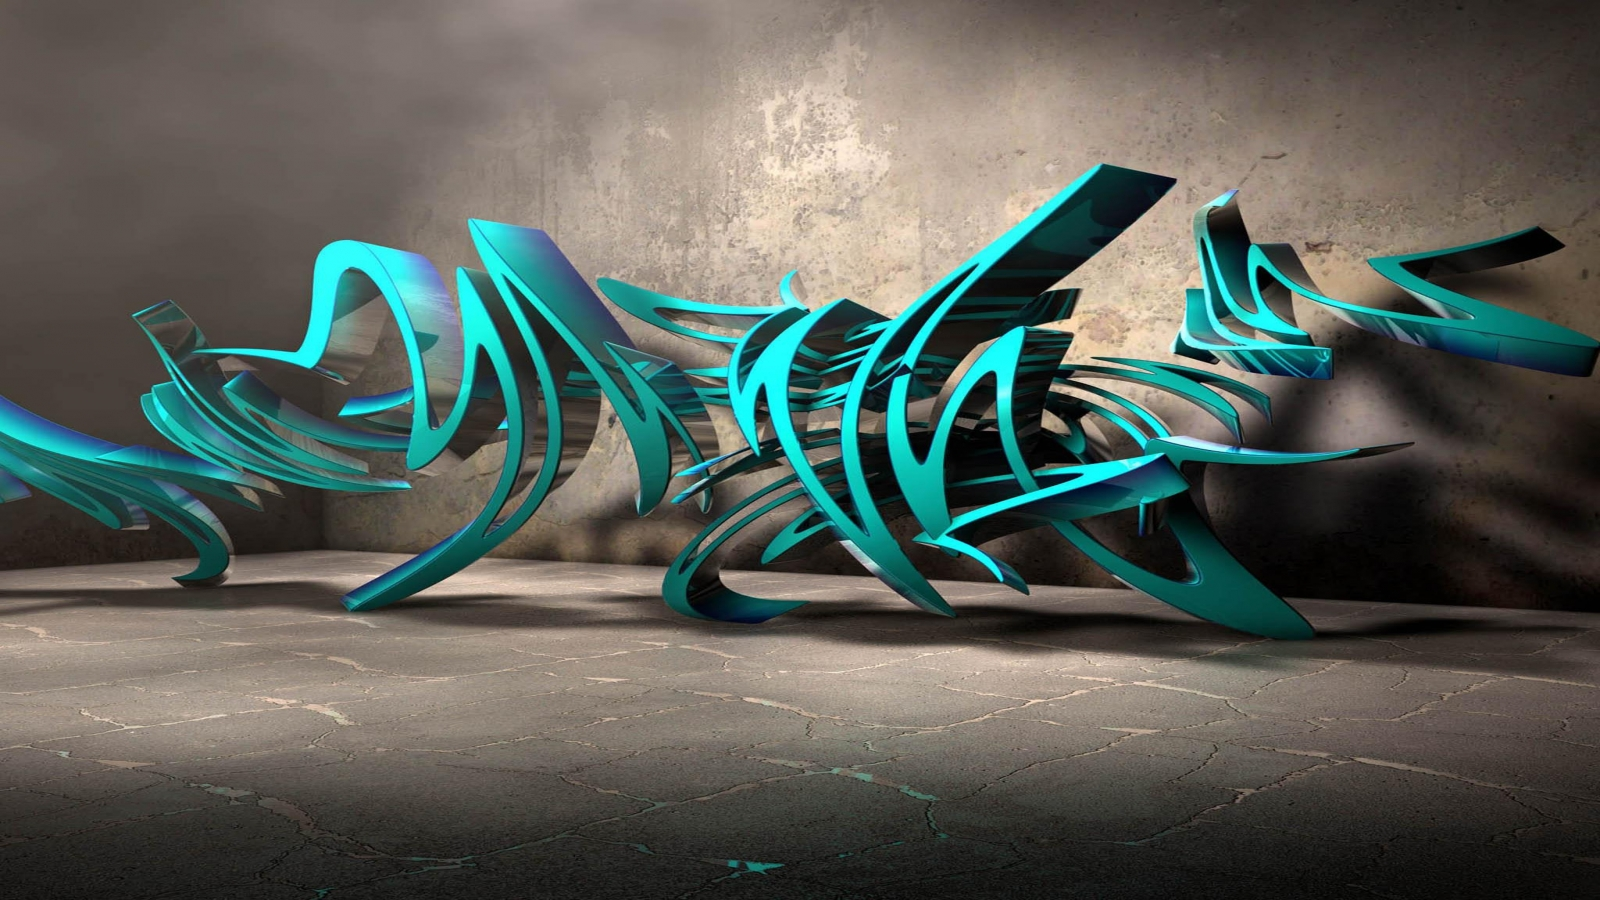 Free 3d Graffiti Wallpapers The Art Mad Wallpapers